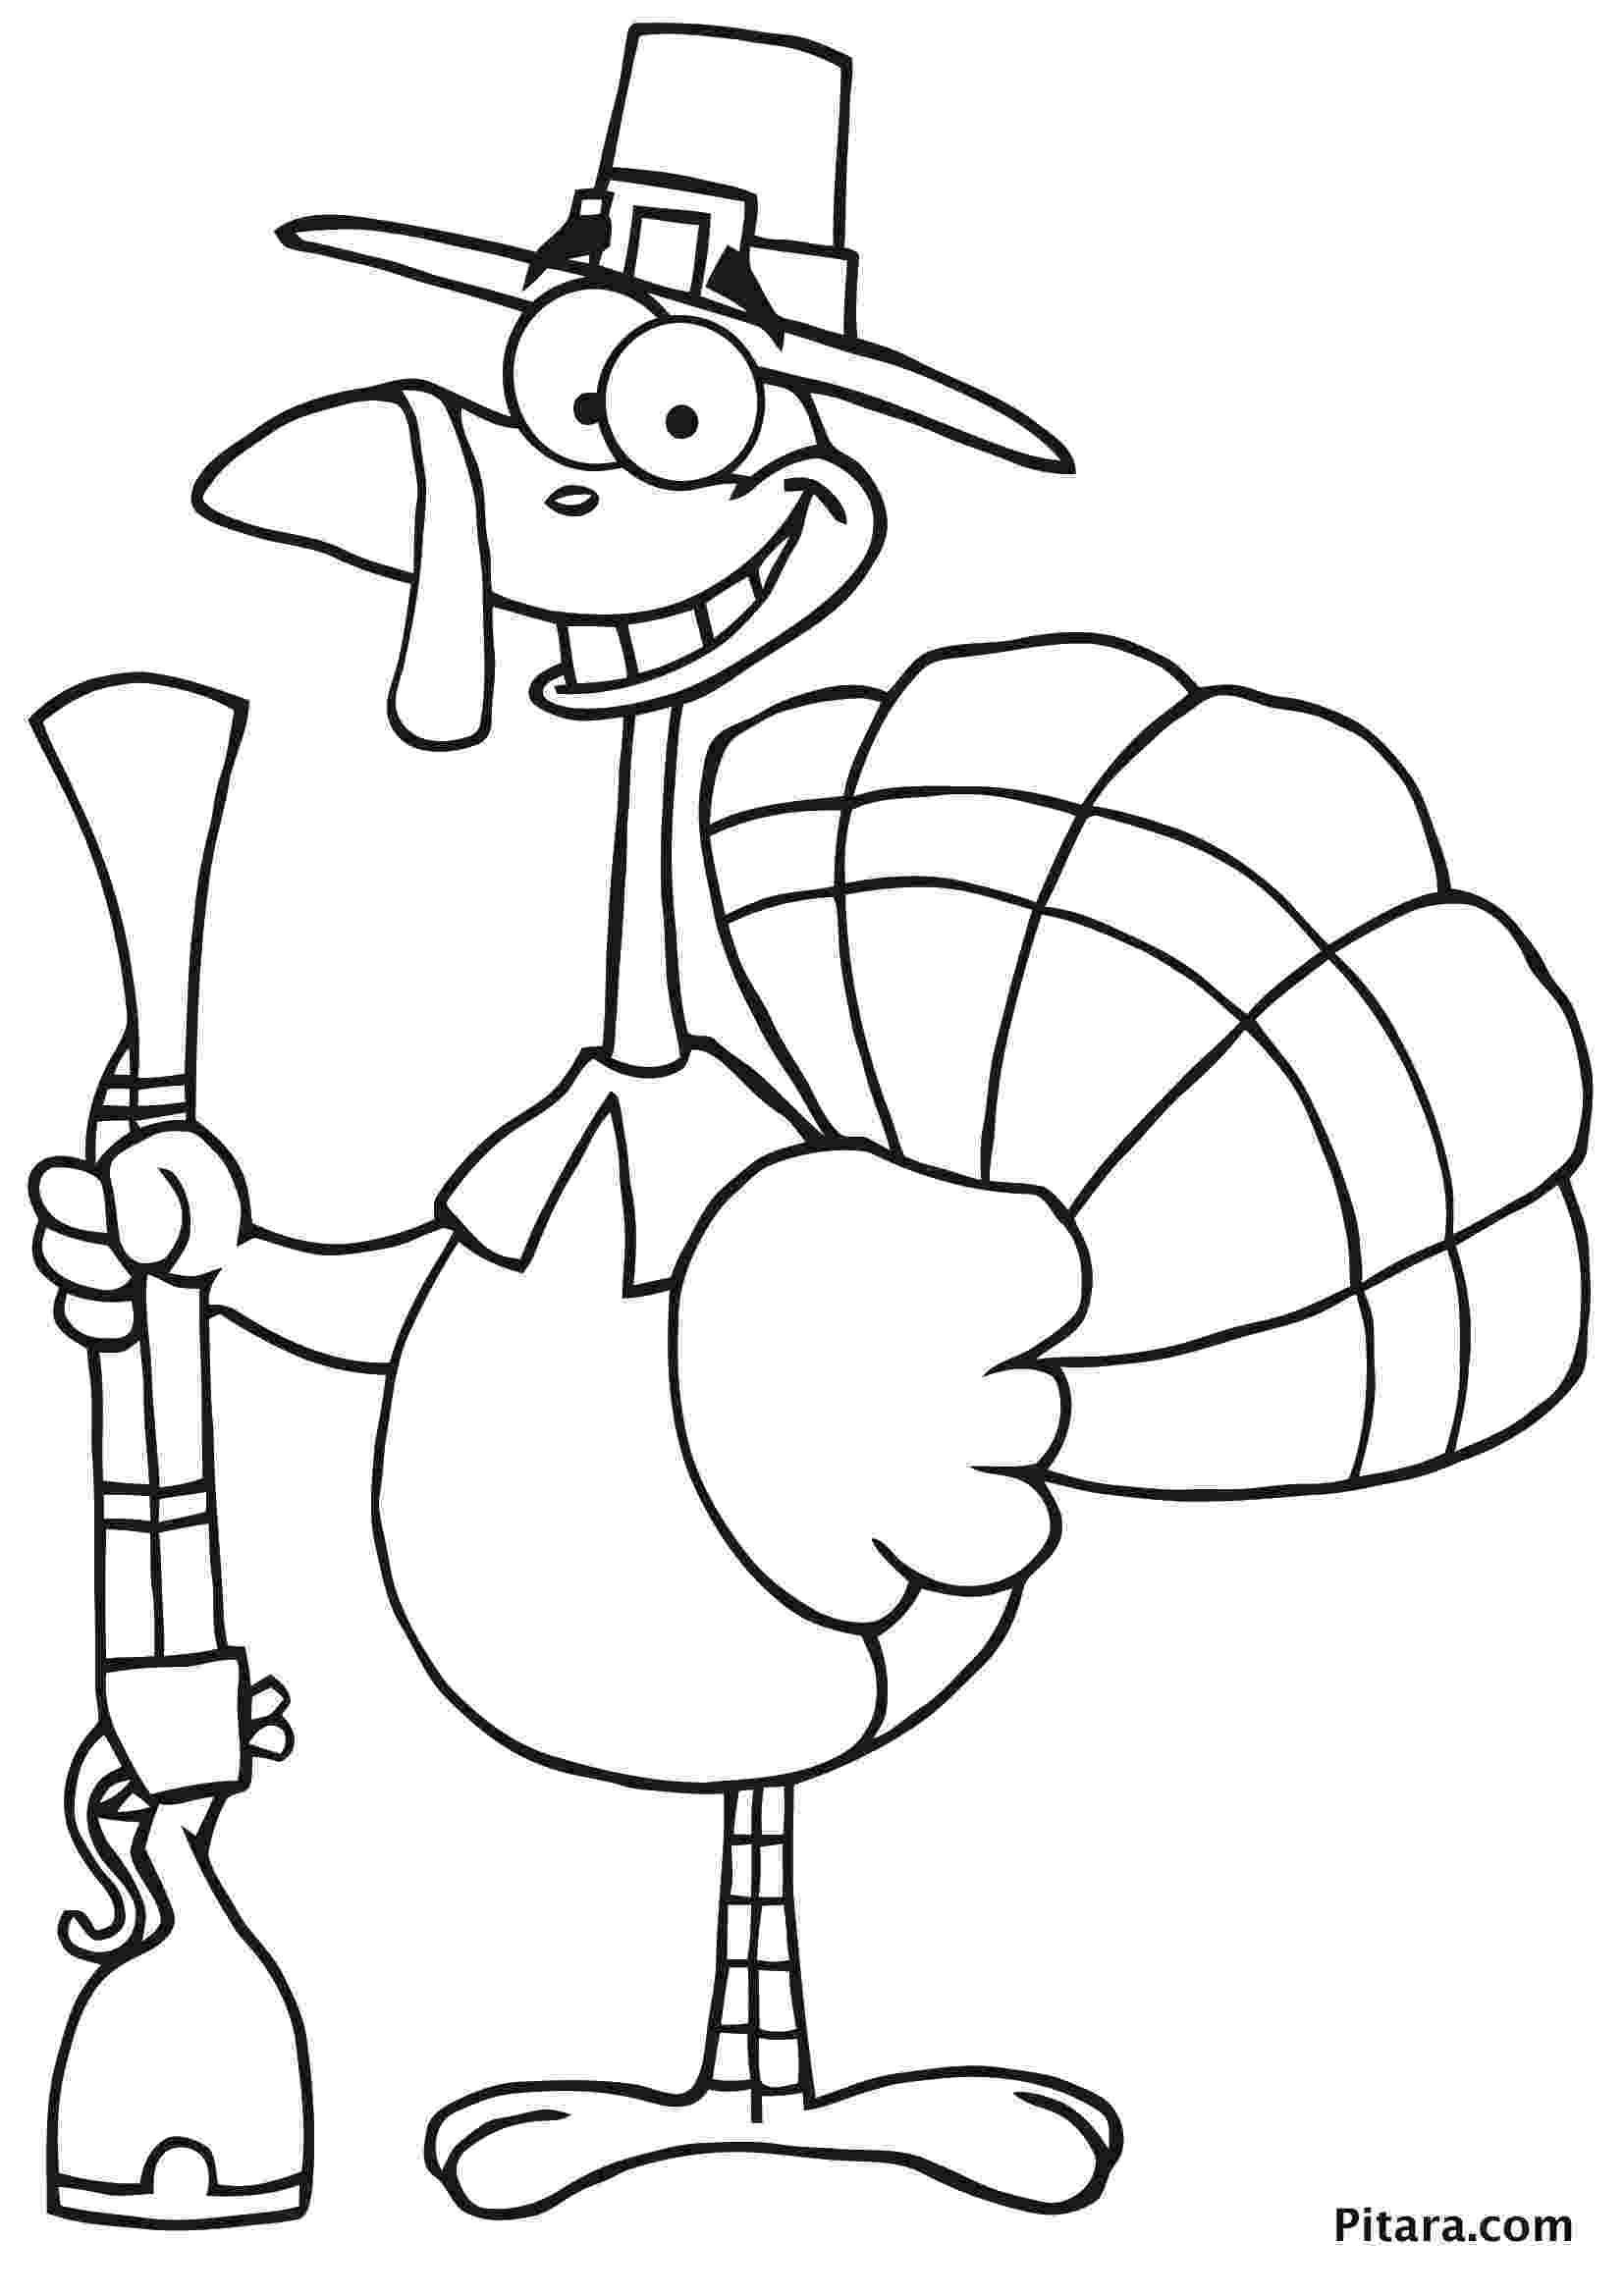 turkey coloring turkey coloring pages for kids pitara kids network coloring turkey